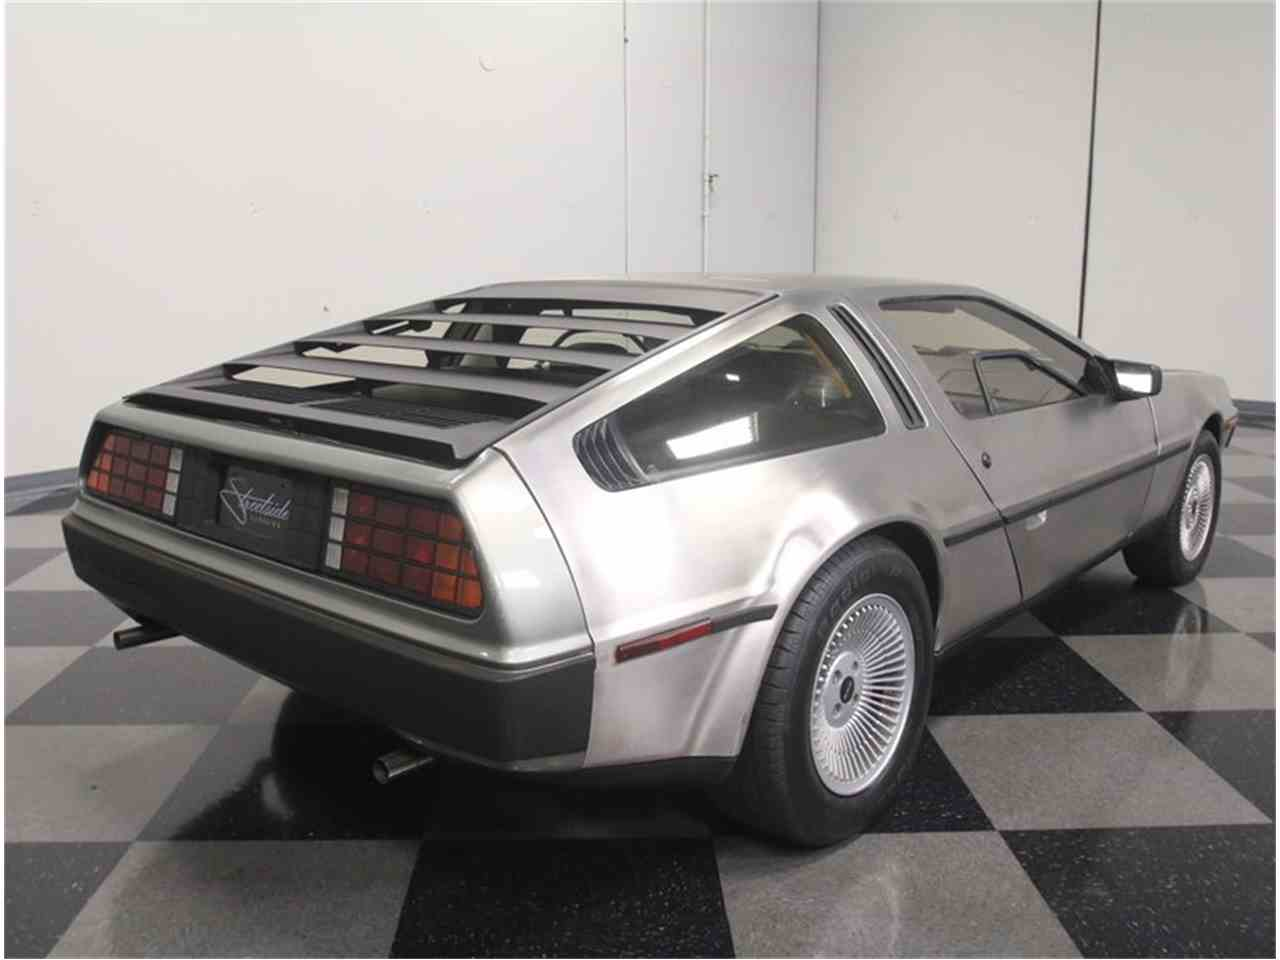 Large Picture of '81 DeLorean DMC-12 located in Lithia Springs Georgia - $49,995.00 - MGXM